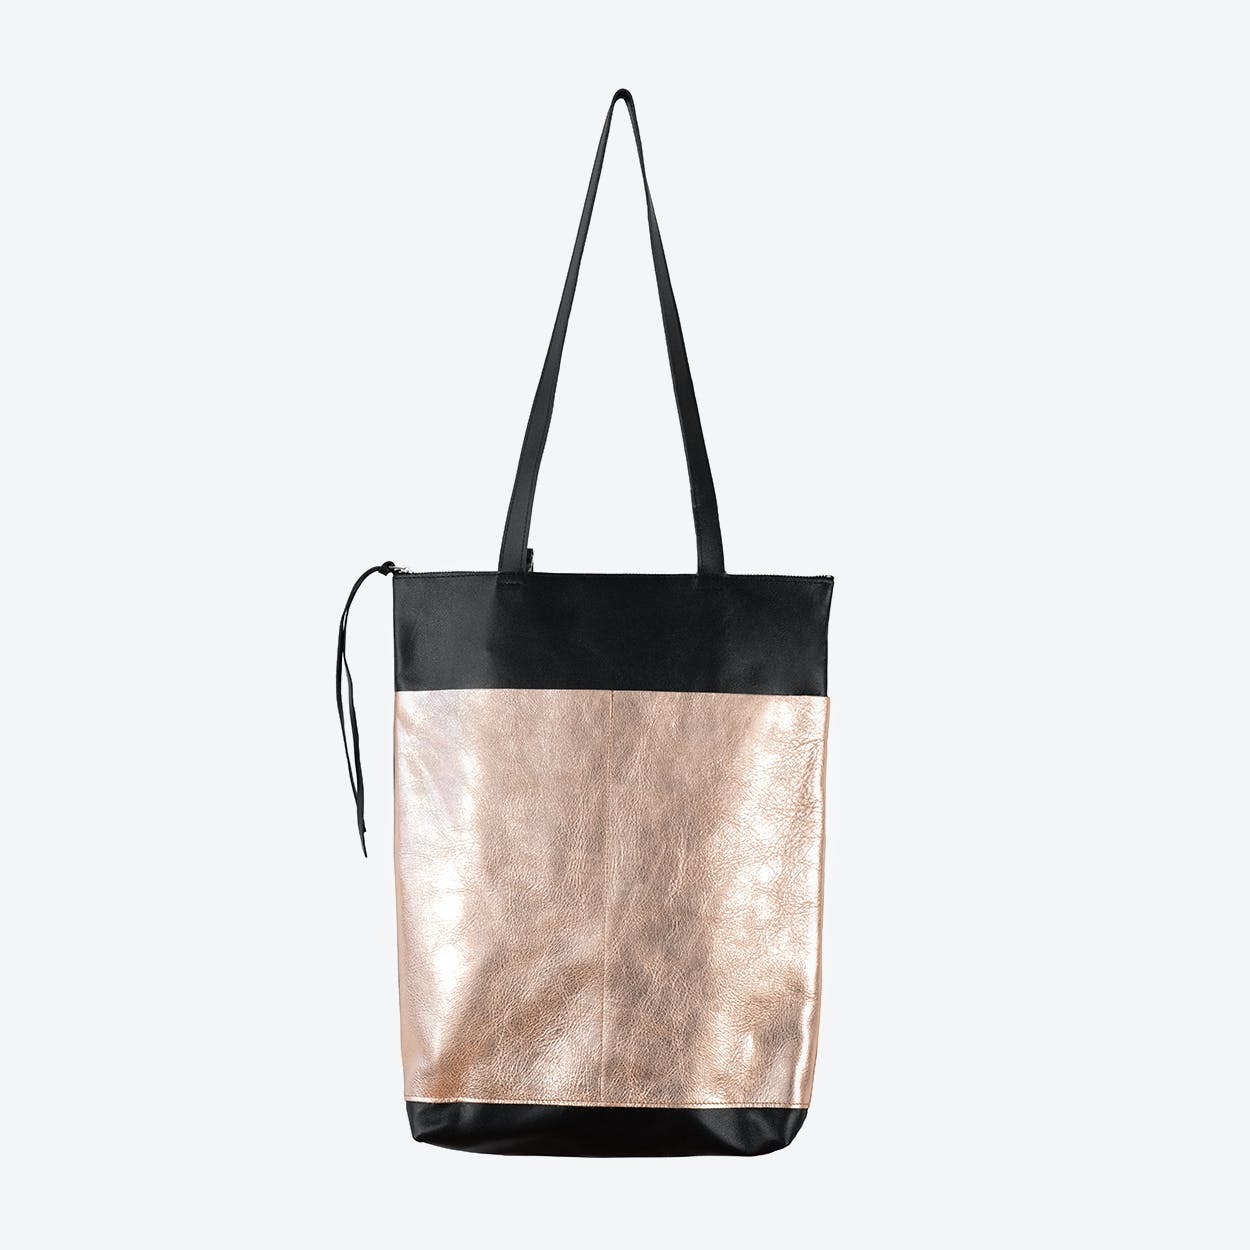 BJARNE Backpack in Black / Copper